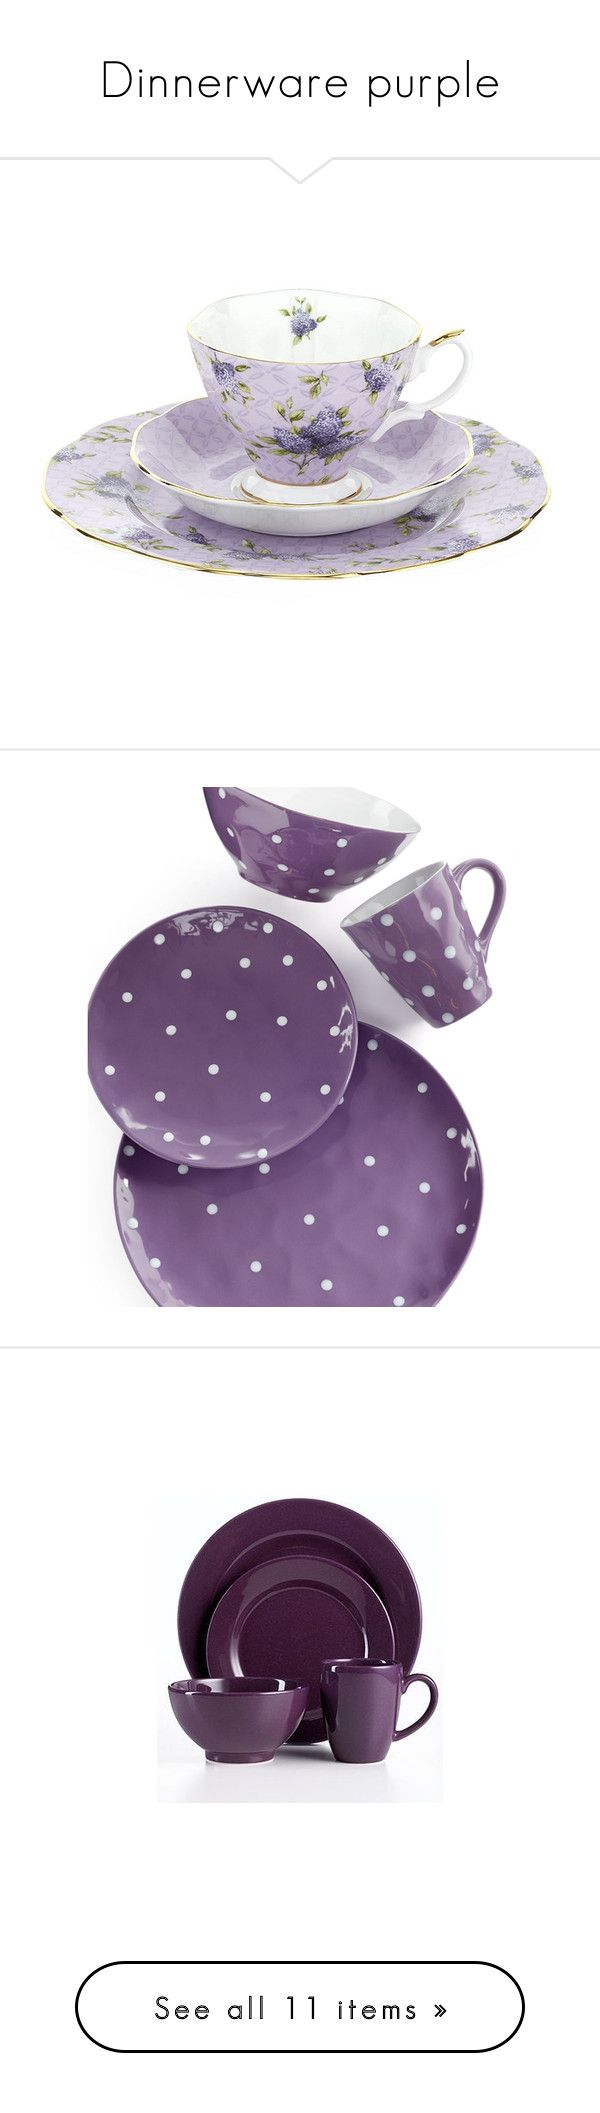 """""""Dinnerware purple"""" by elli951 ❤ liked on Polyvore featuring home, kitchen & dining, dinnerware, royal albert, royal albert dinnerware, floral dinnerware, purple, purple dinnerware, polka dot dinnerware and maxwell williams dinnerware"""